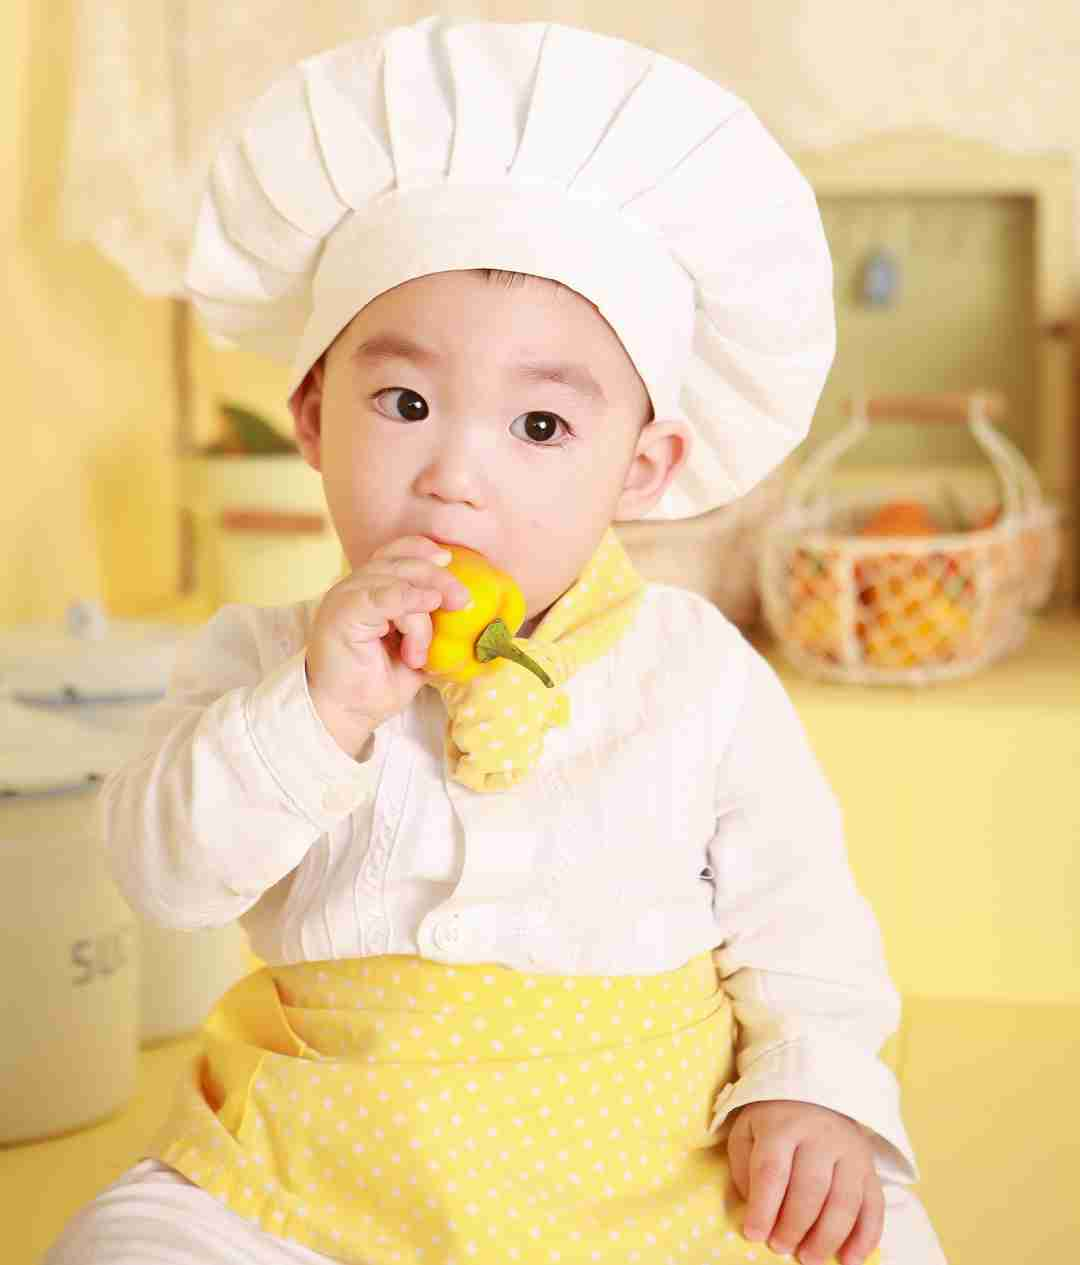 How to raise healthy kids by cooking